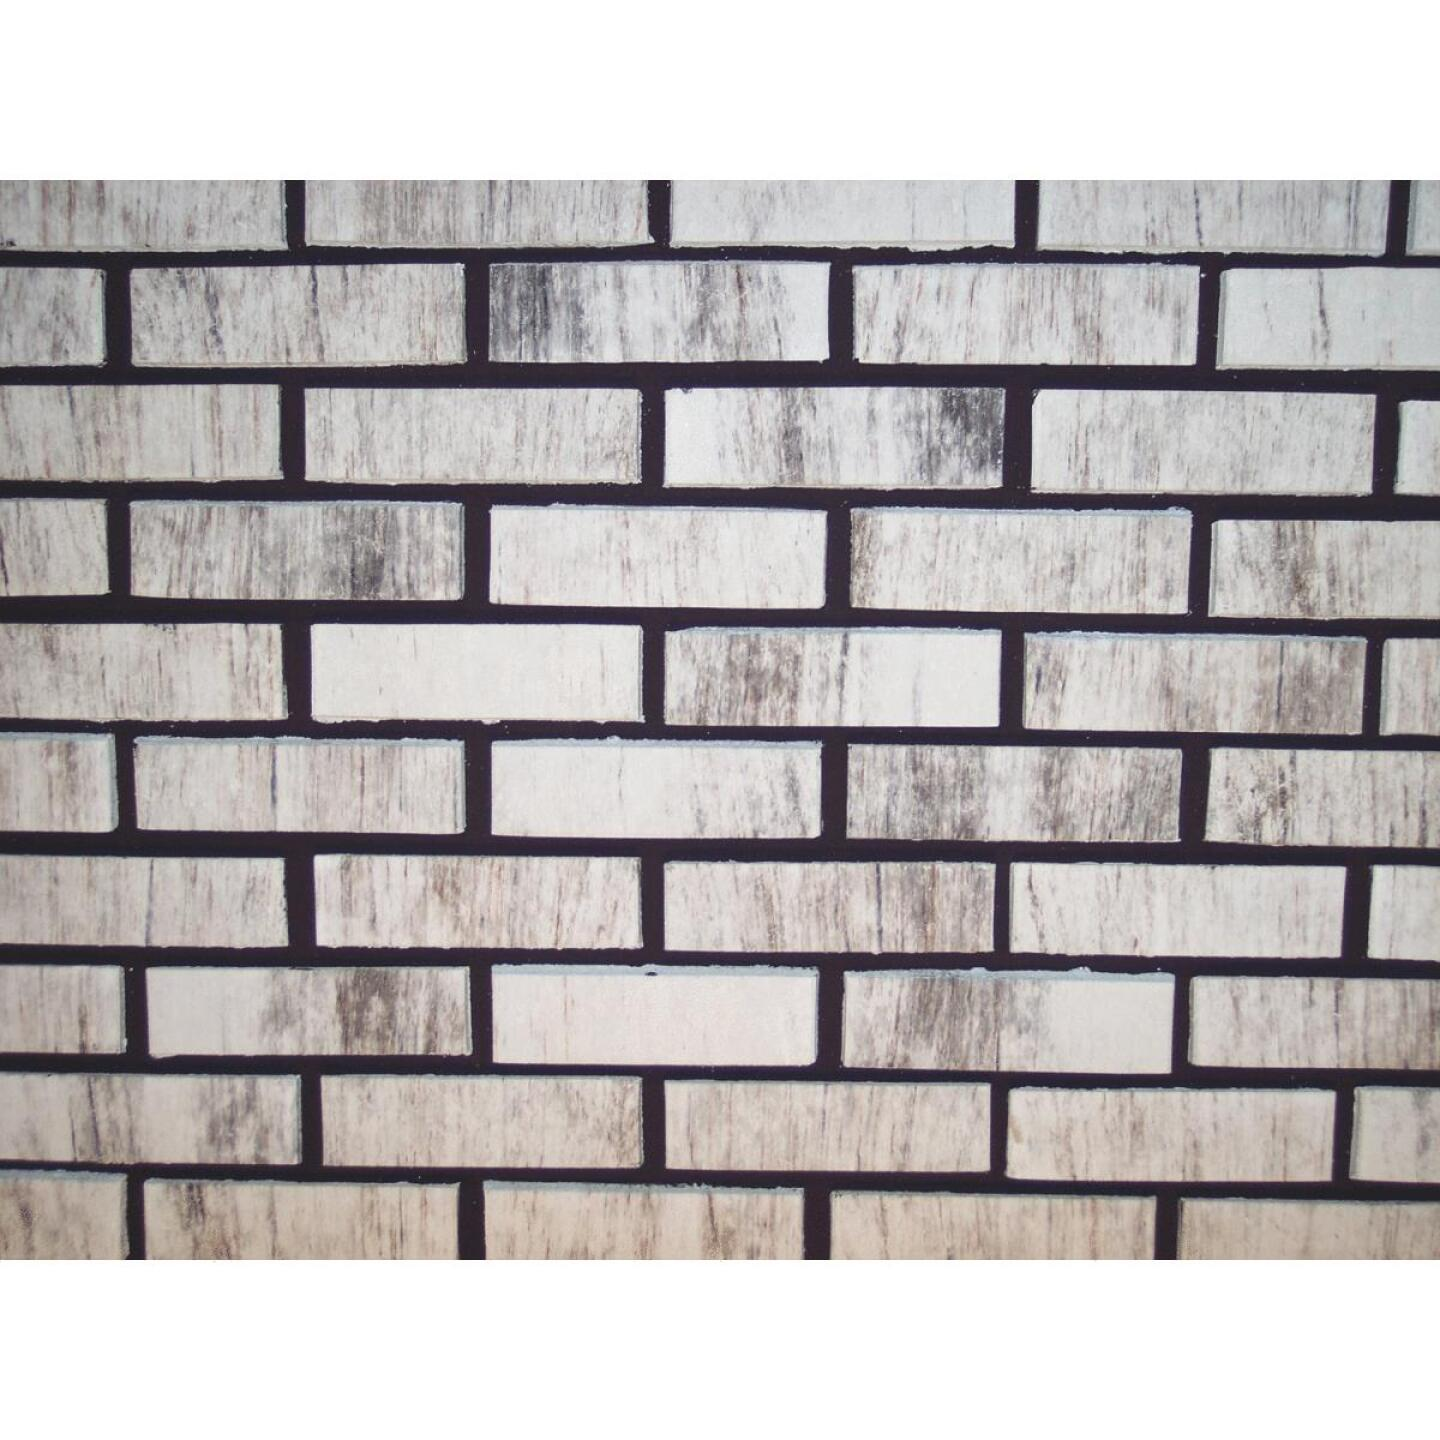 Z-Brick Americana 2-1/4 In. x 8 In. Silver Facing Brick Image 2